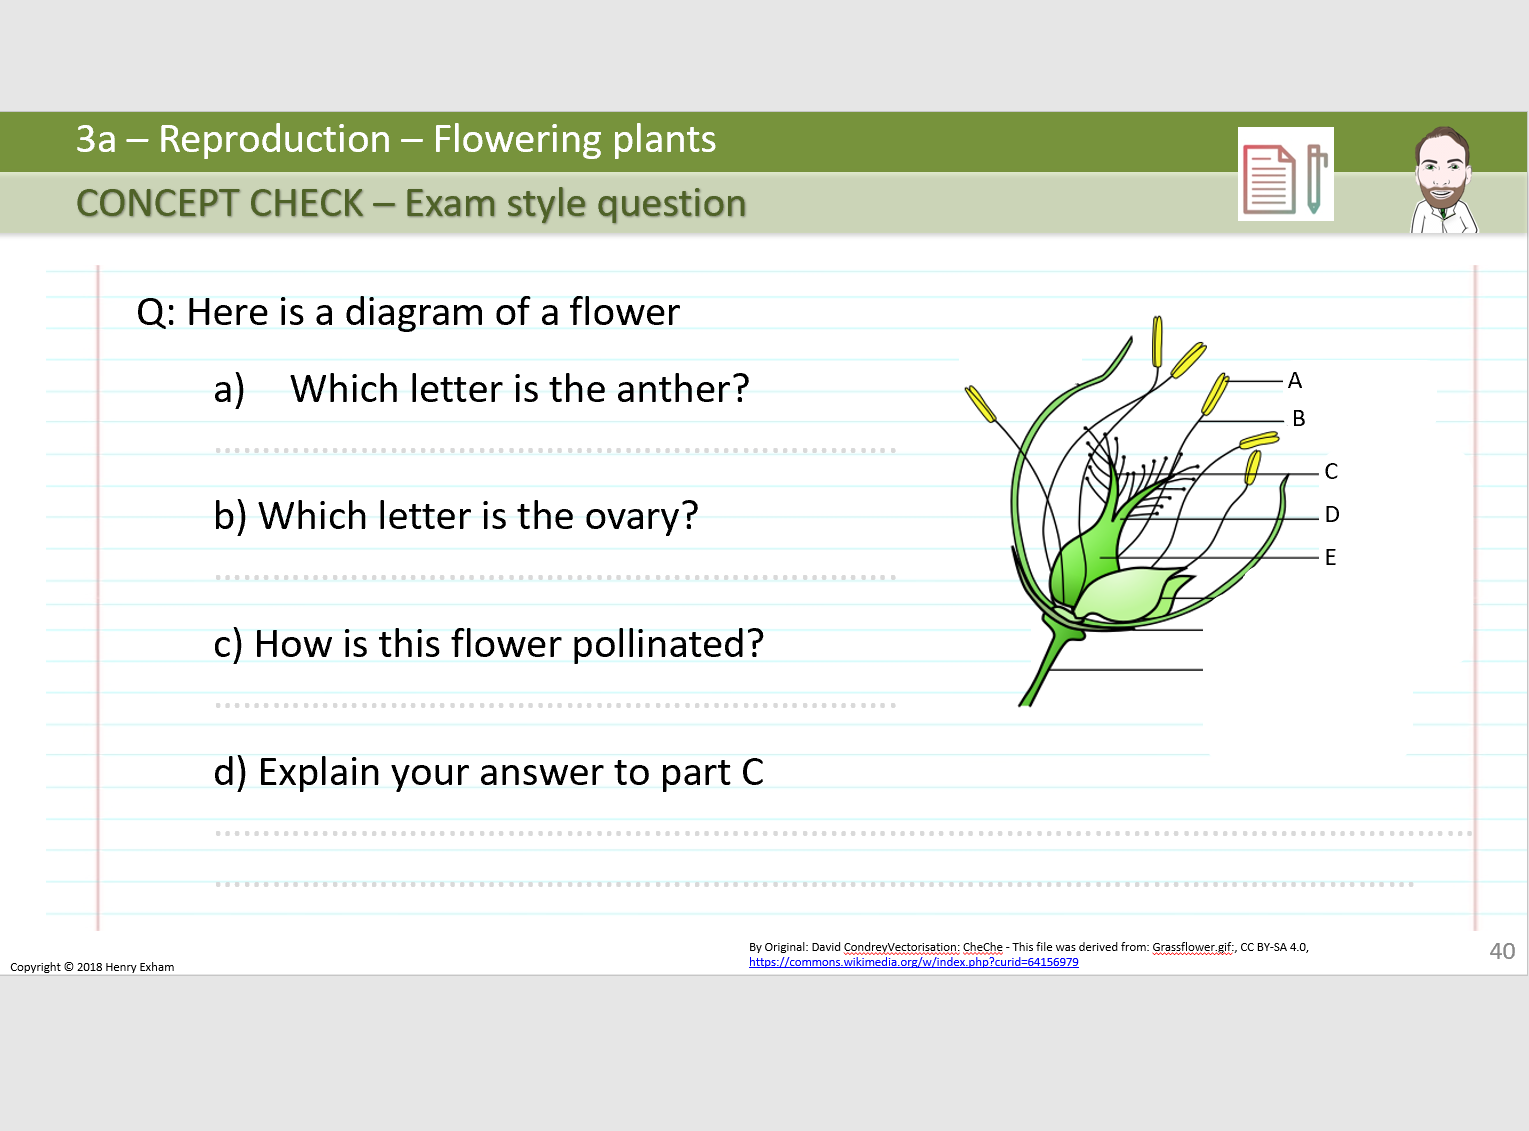 3a Reproduction - Flowering Plants